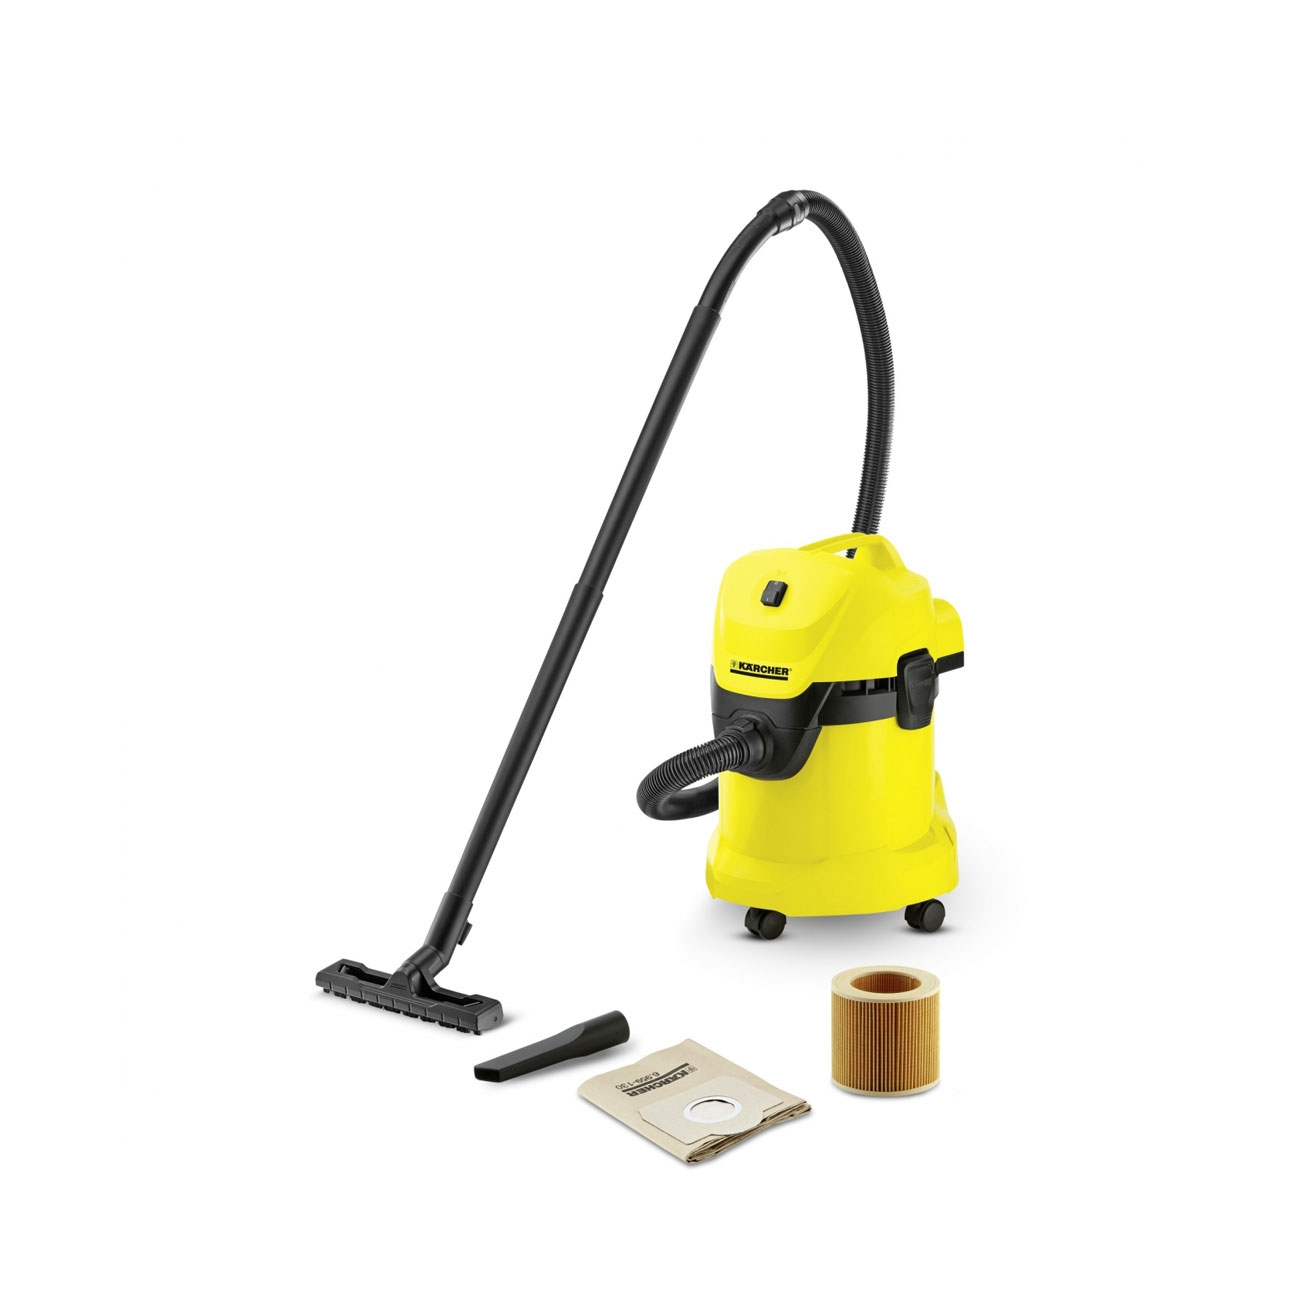 Karcher WD 3 Wet and Dry Vacuum Cleaner-1000 W